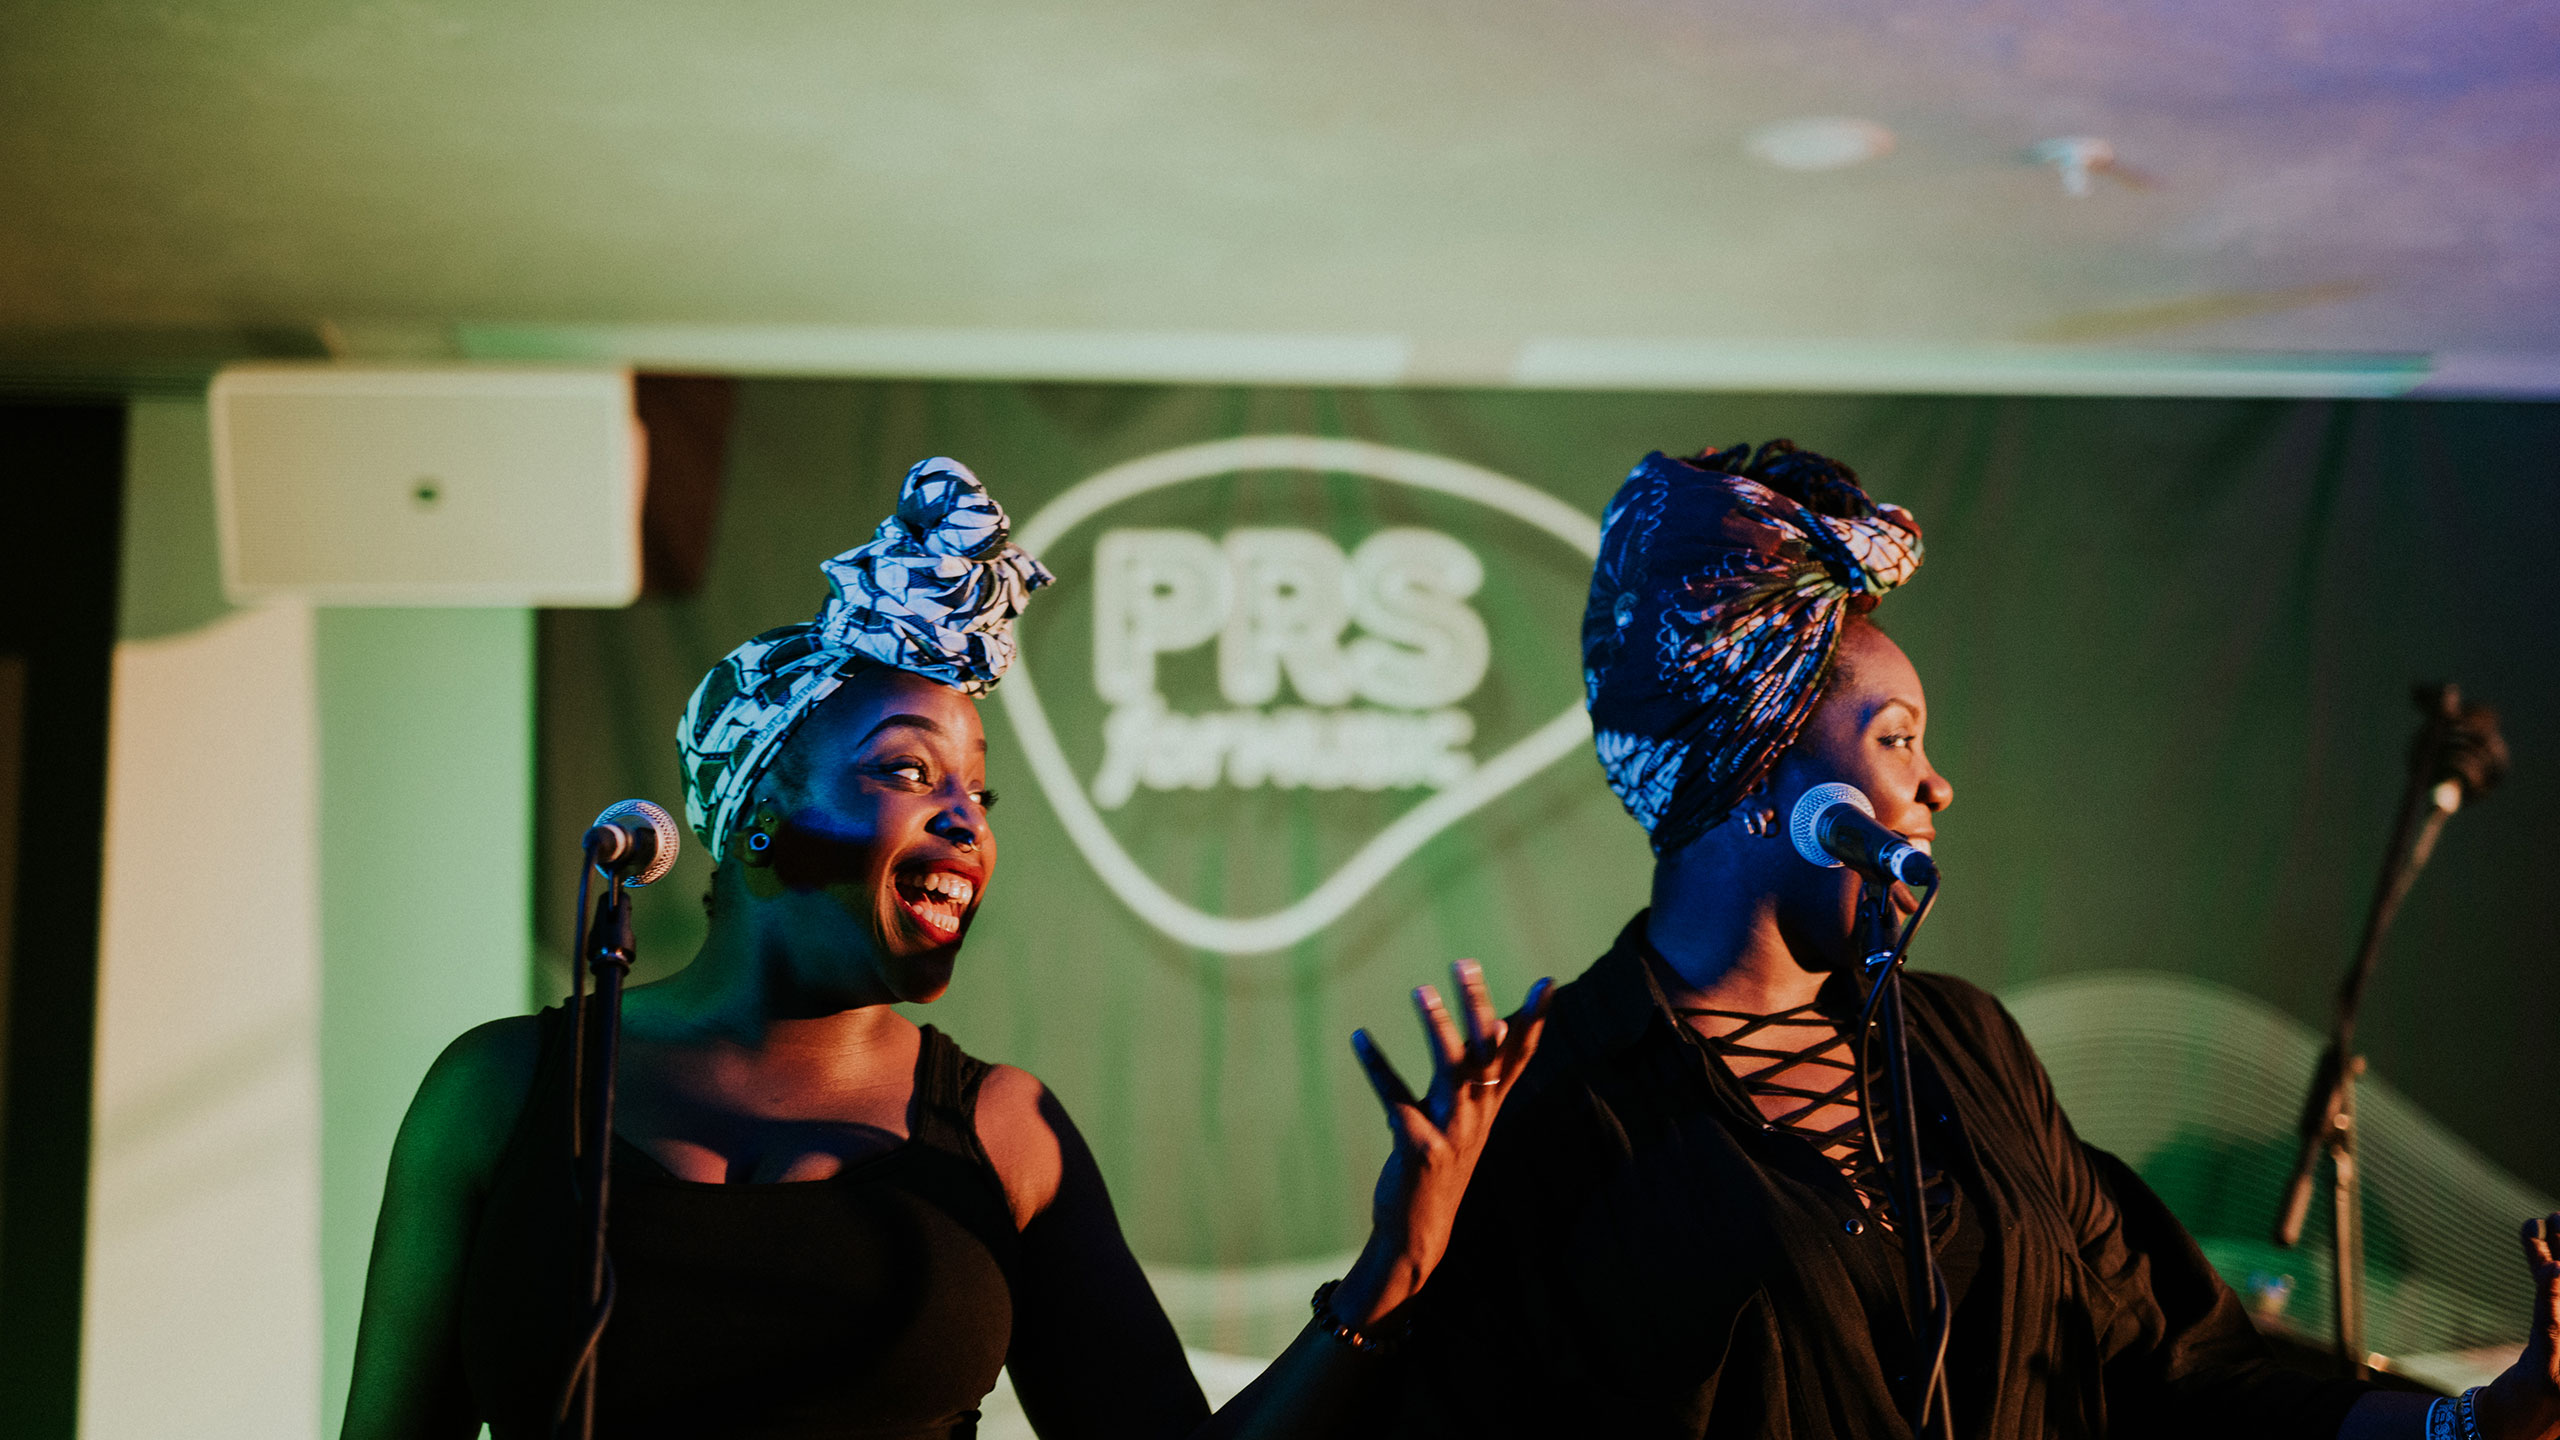 Two singers wearing colourful head wraps and black tops sing and smile to their left on stage at PRS for Music Presents